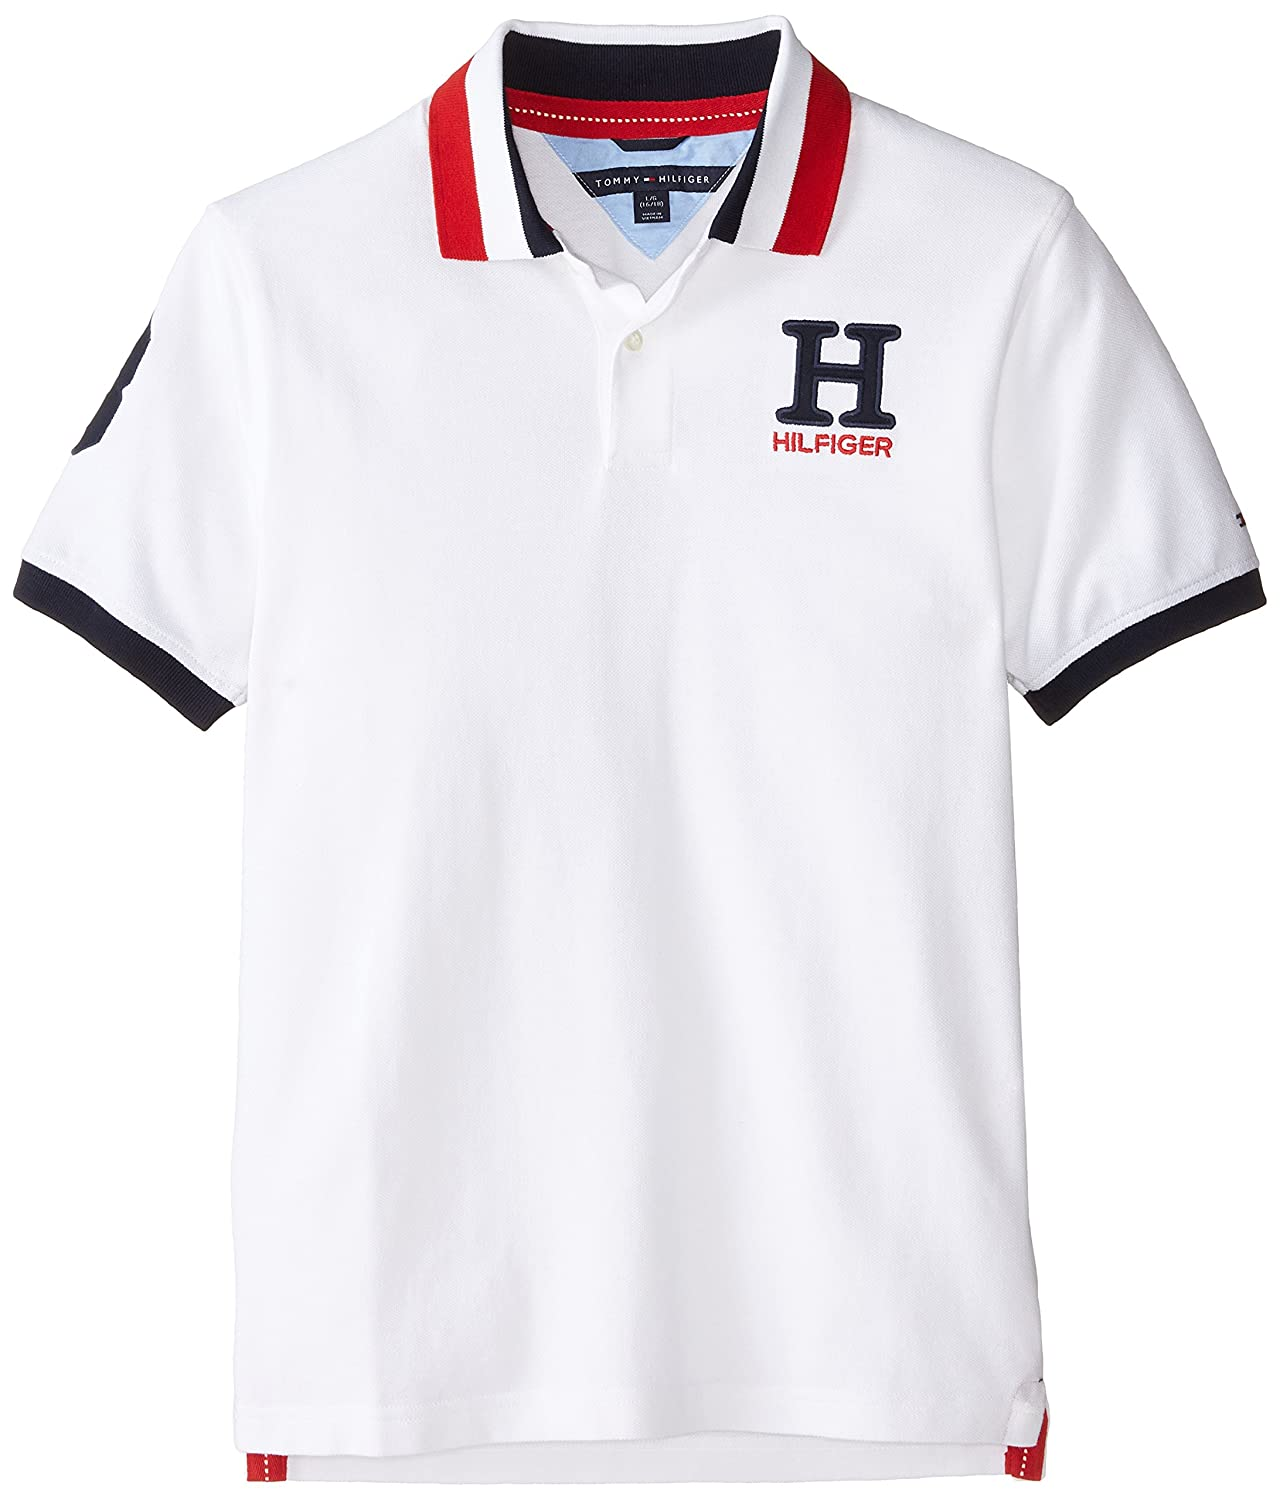 343fd3164fc TOMMY HILFIGER - Camisa Polo